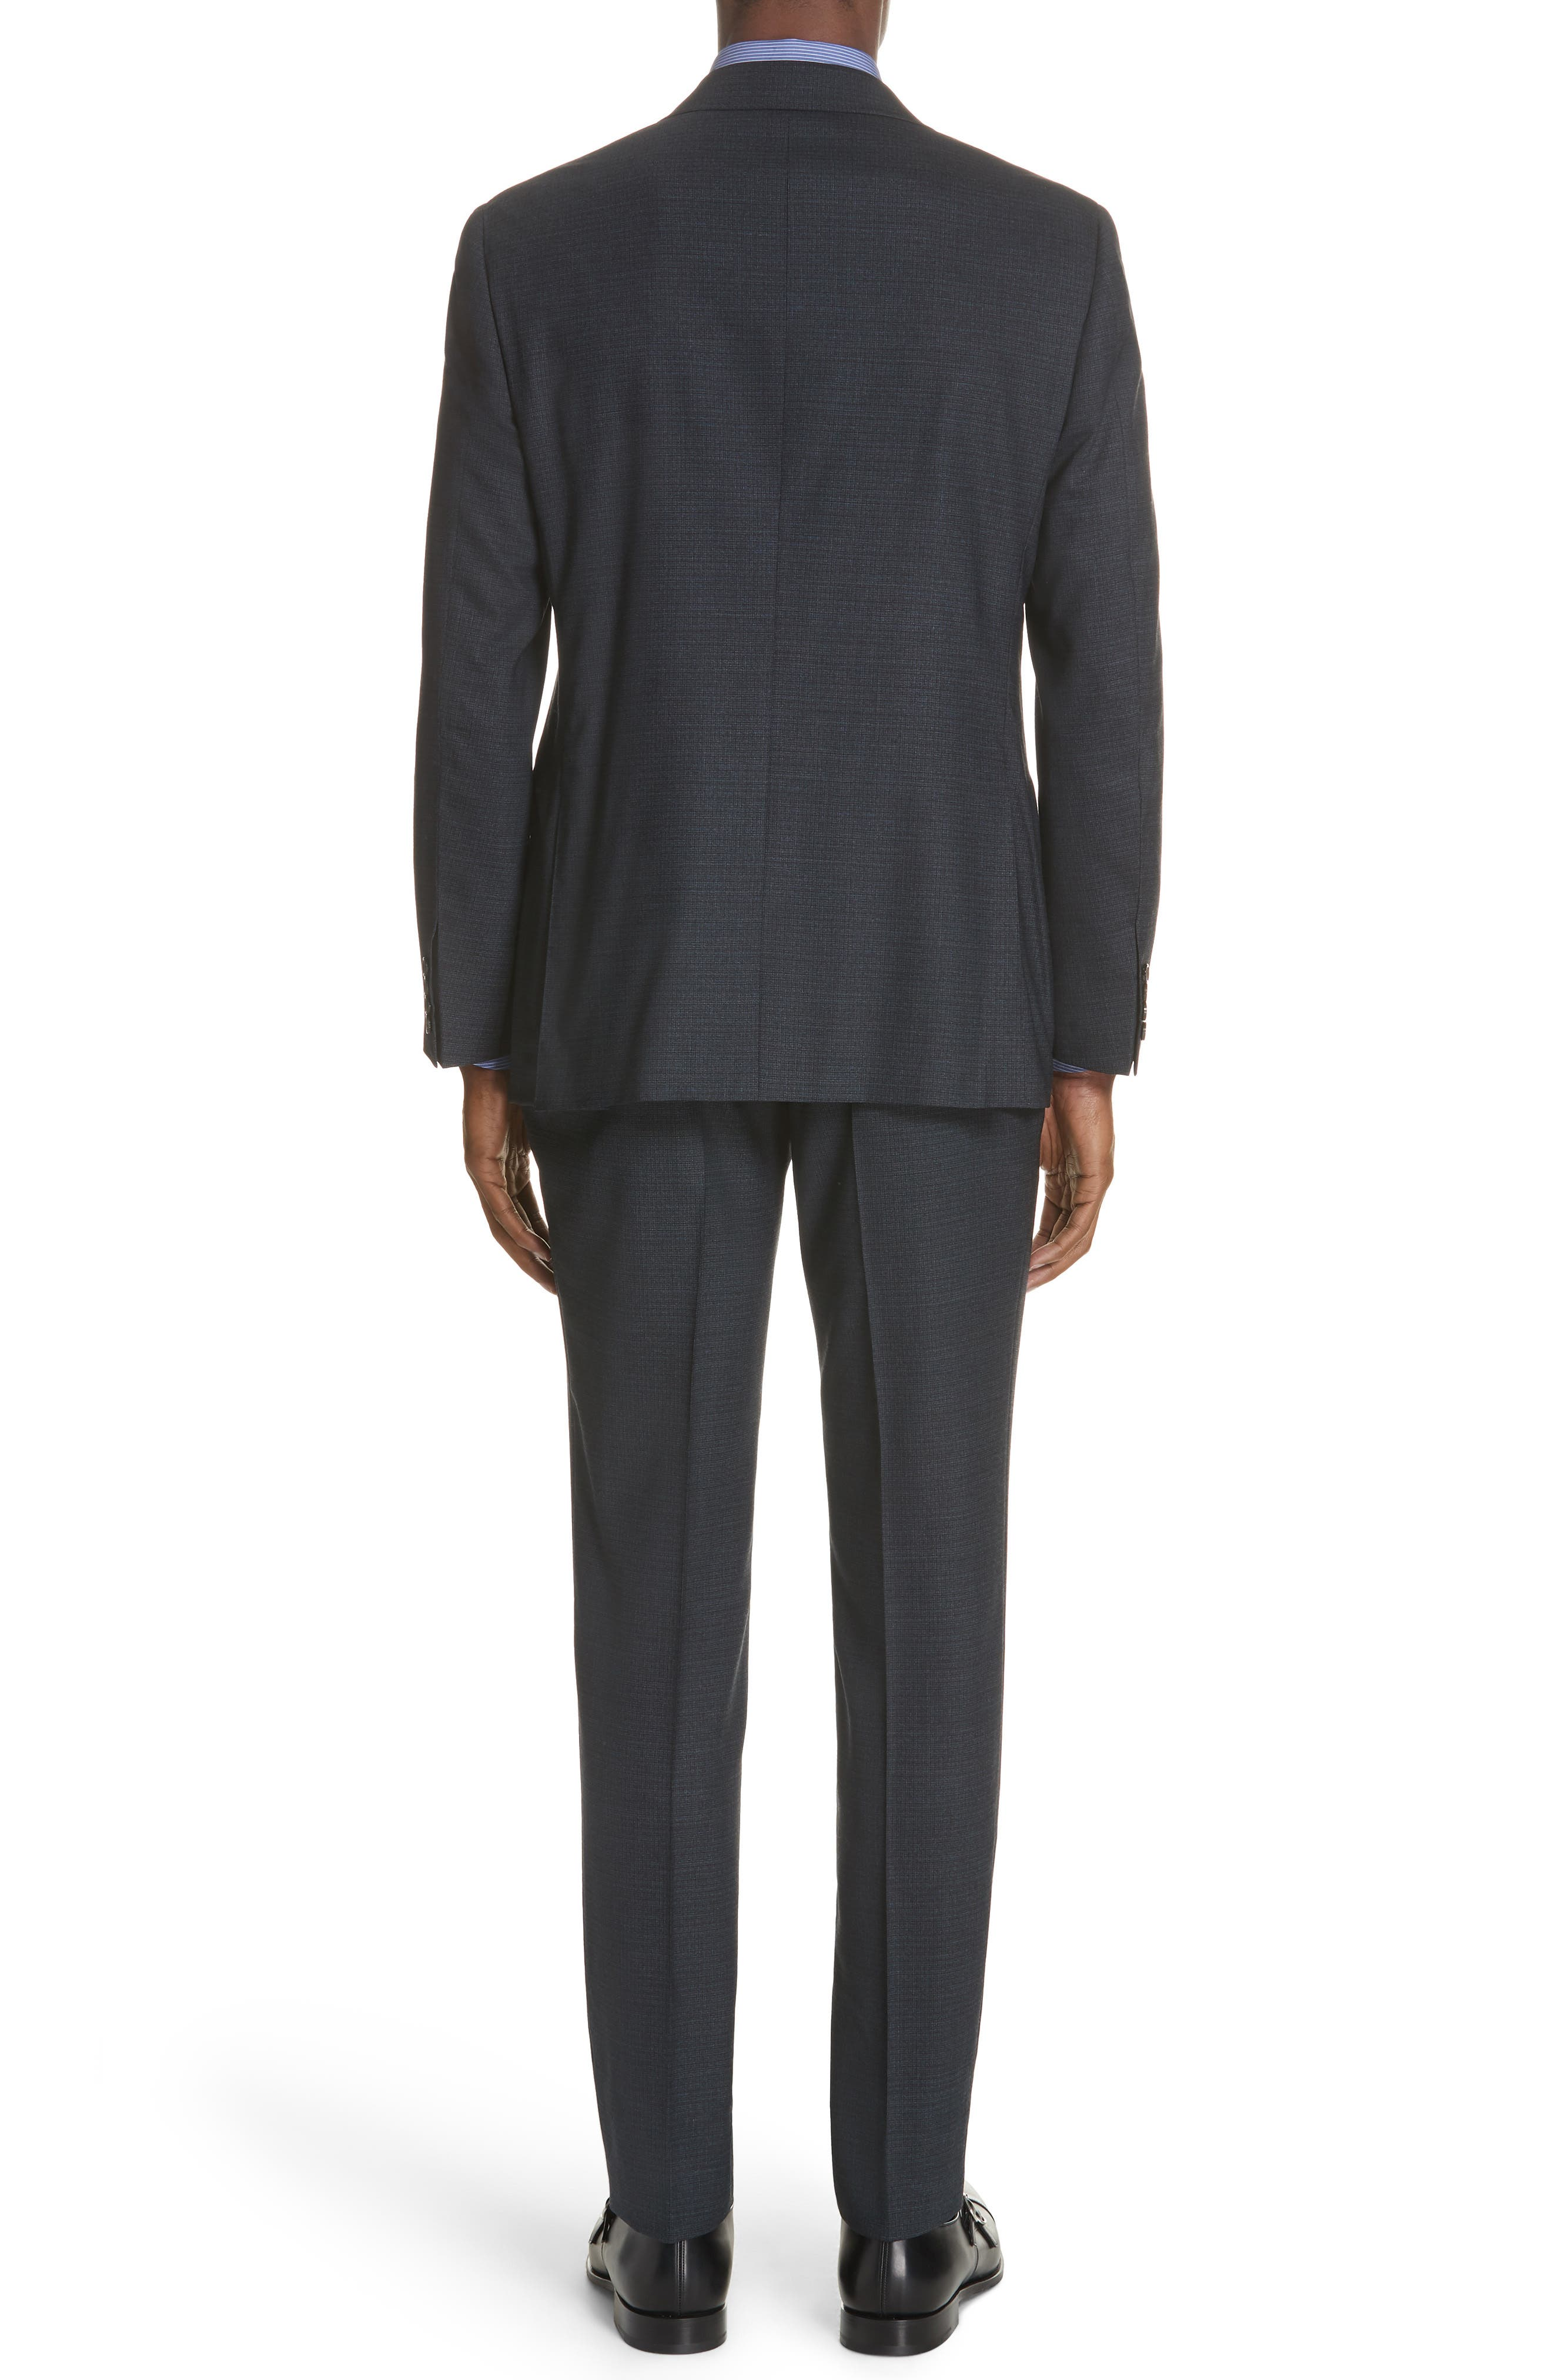 CANALI,                             Classic Fit Stretch Check Wool Suit,                             Alternate thumbnail 2, color,                             400